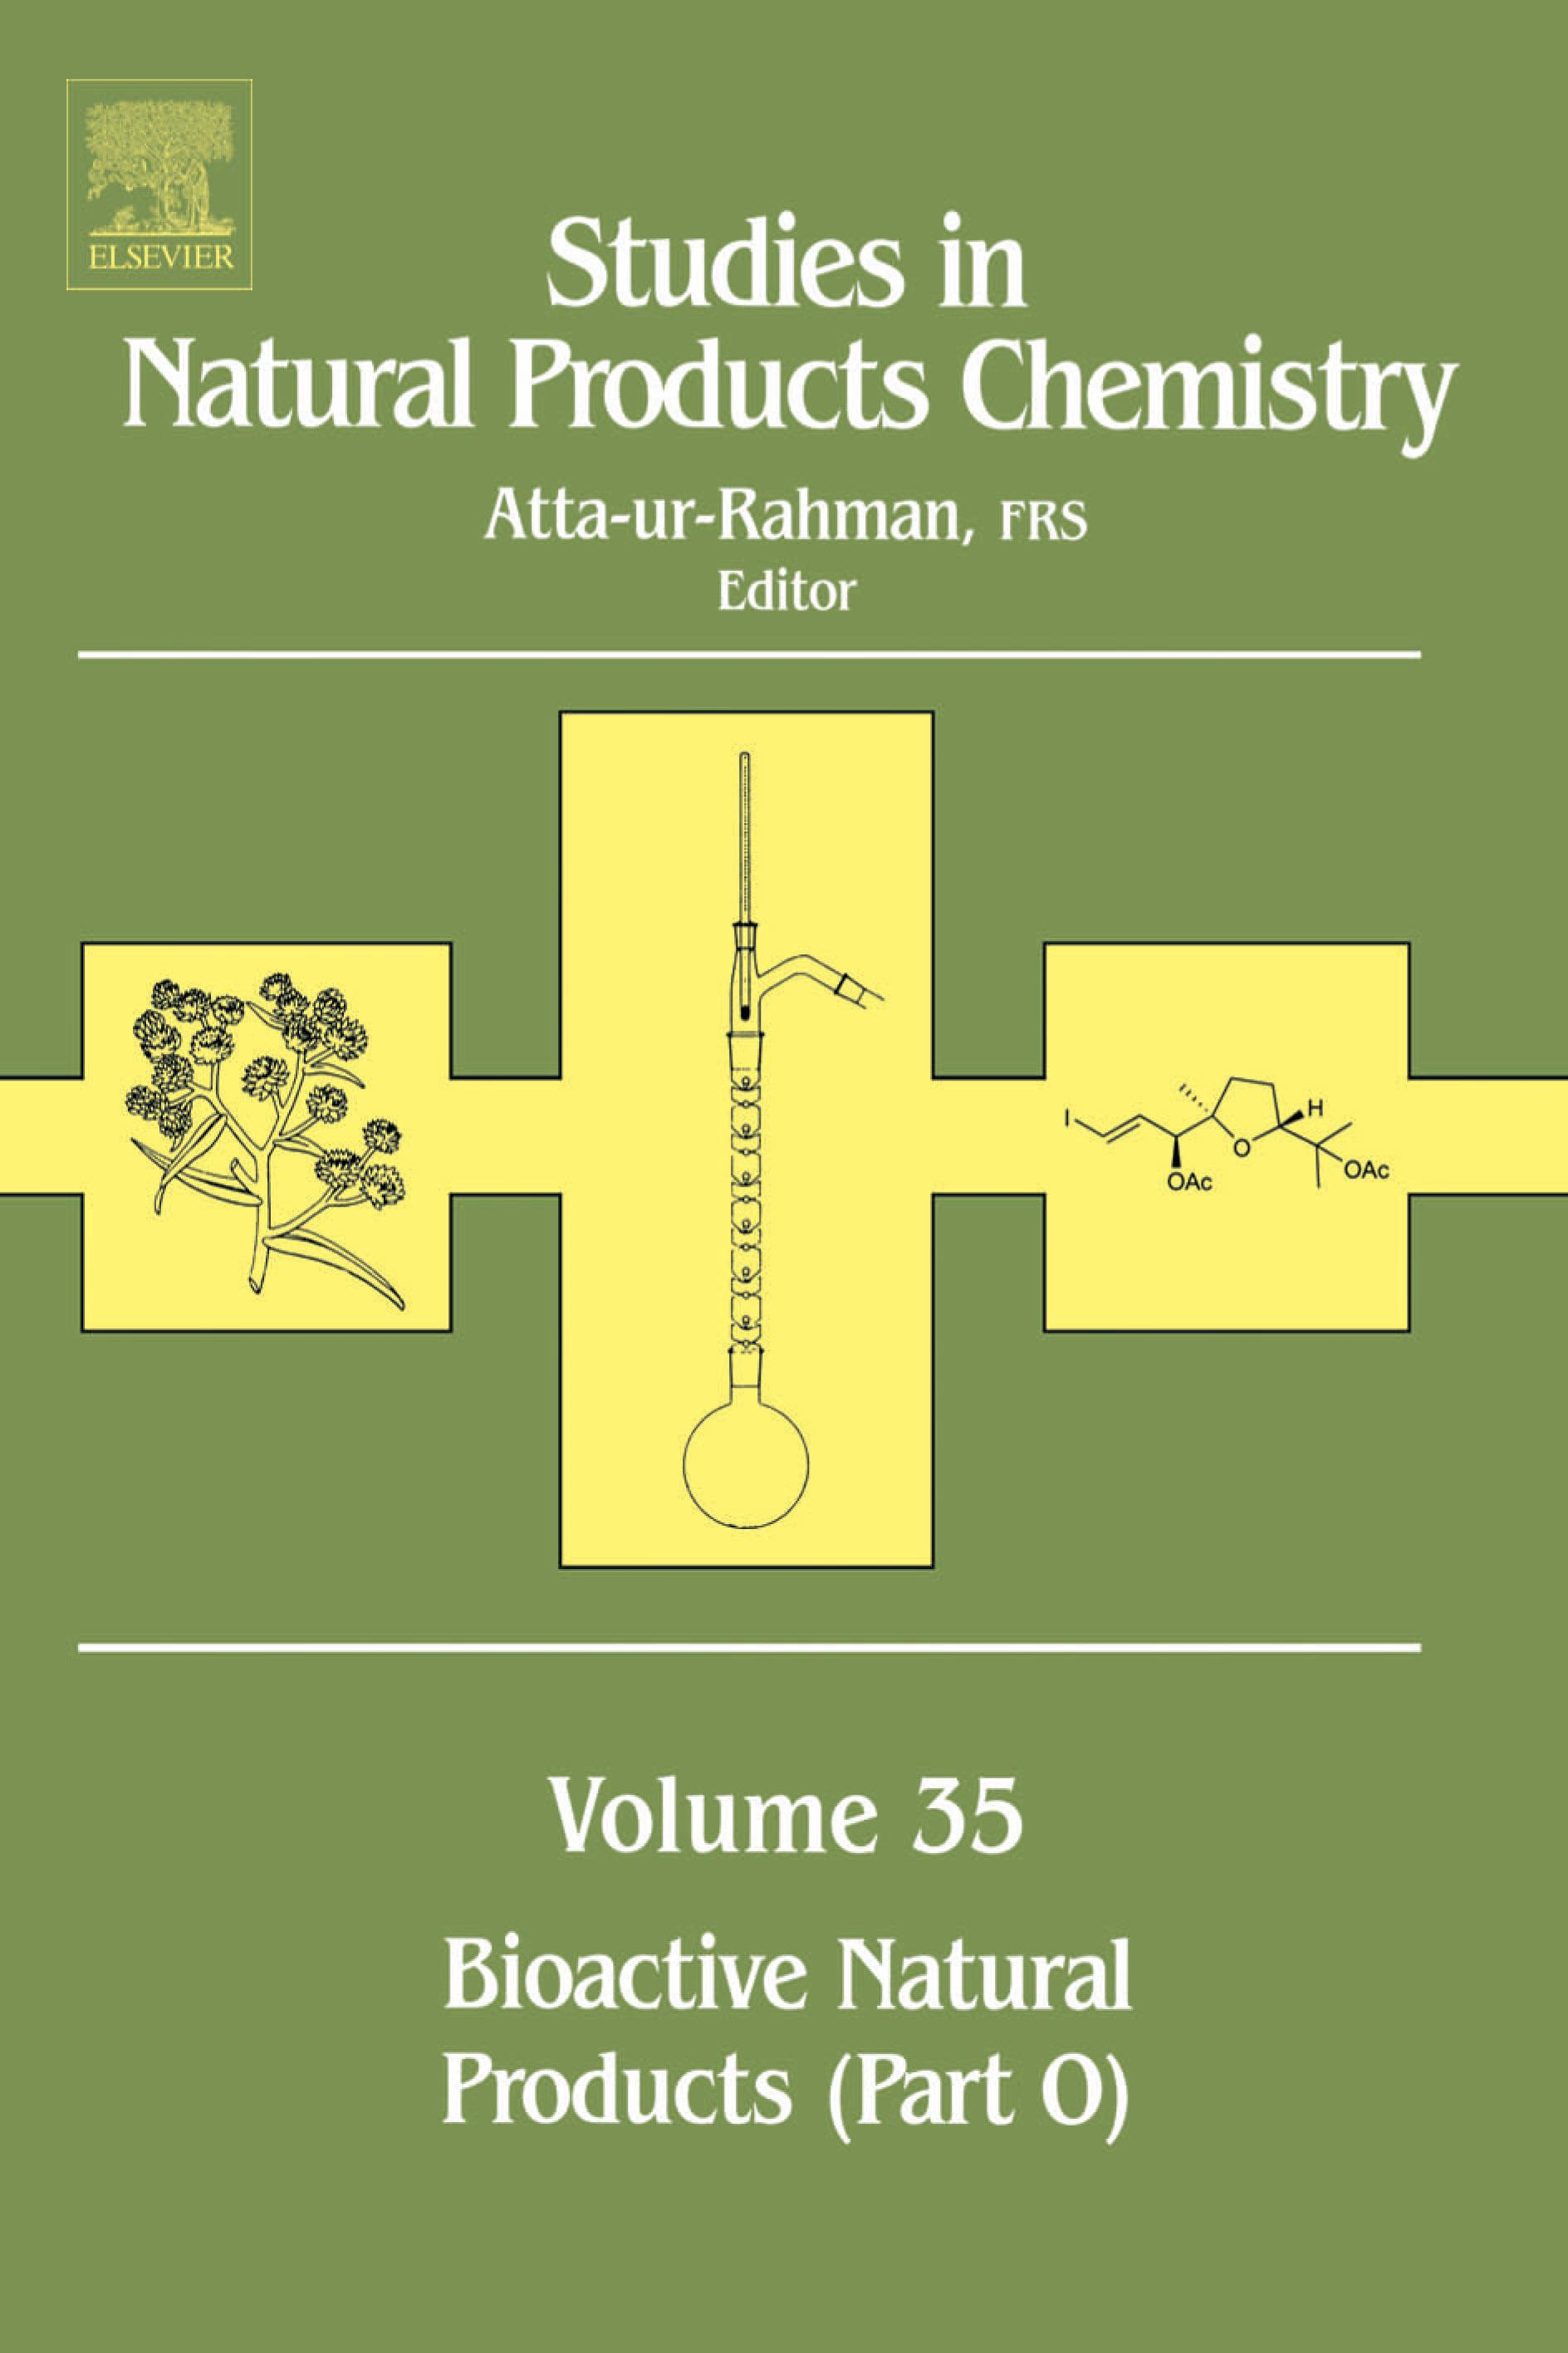 Studies in Natural Products Chemistry By: Rahman, Atta-ur